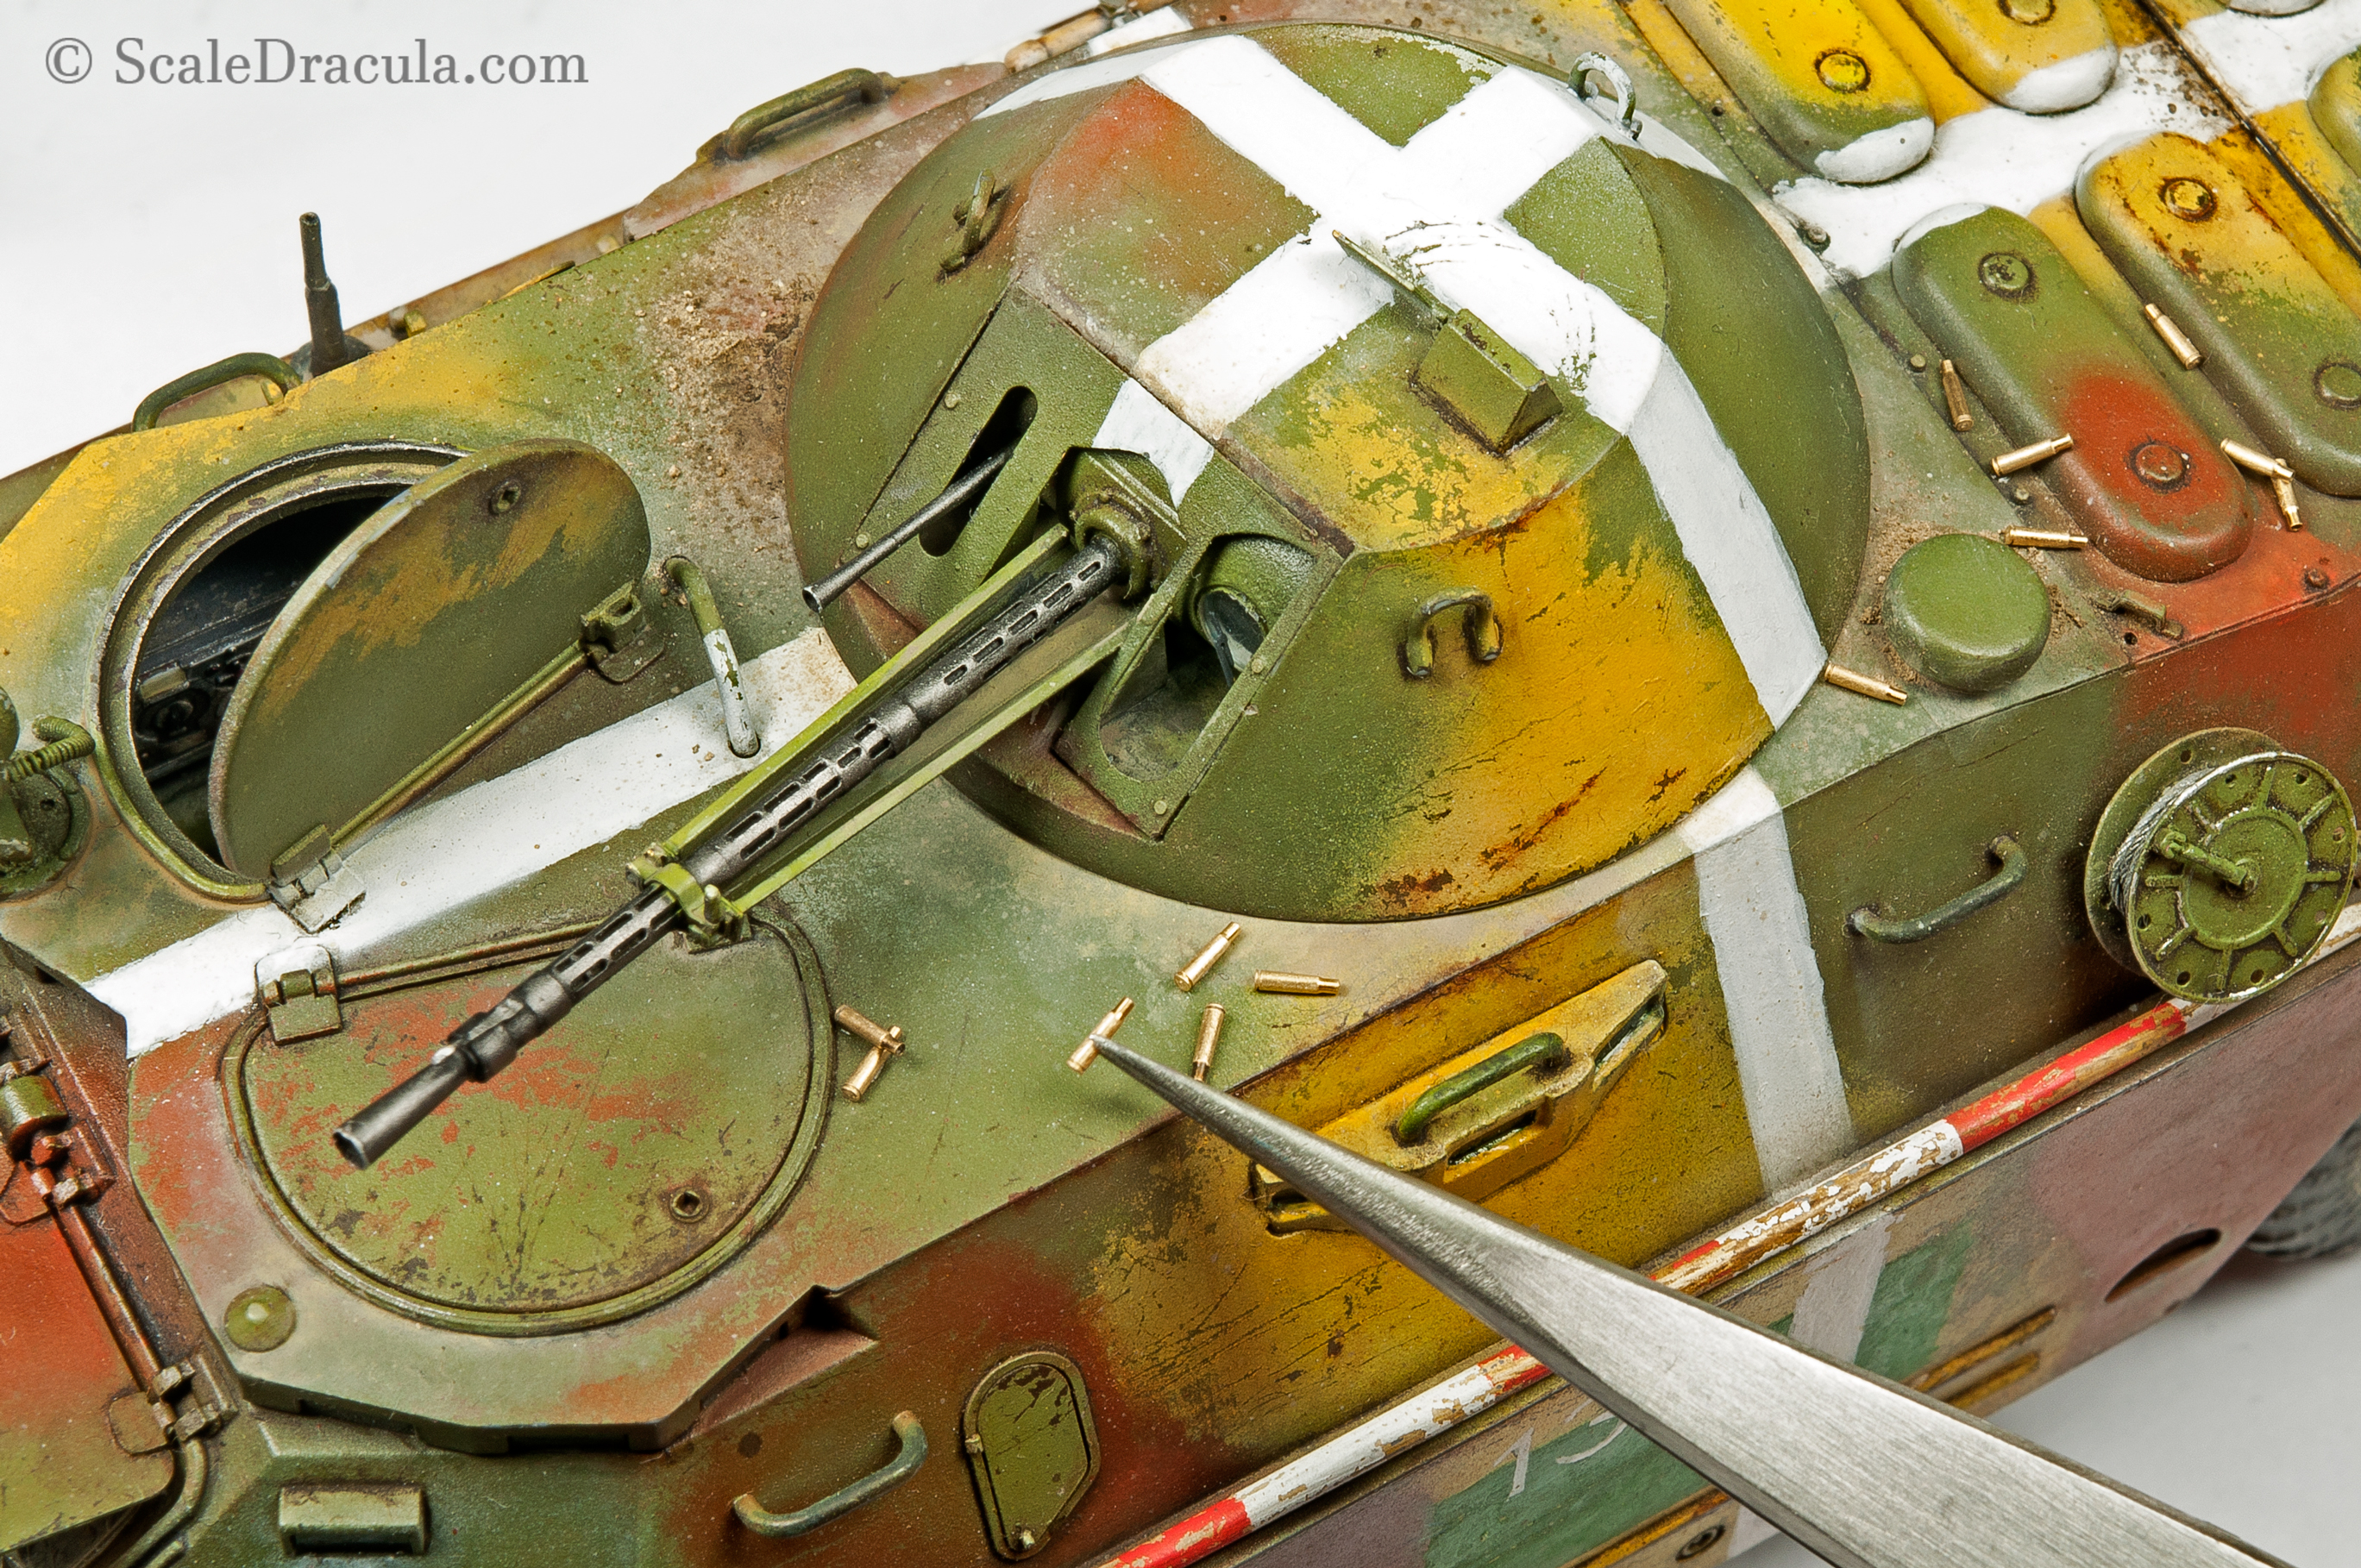 Placing the empty shells on the model, BRDM-2 by Trumpeter